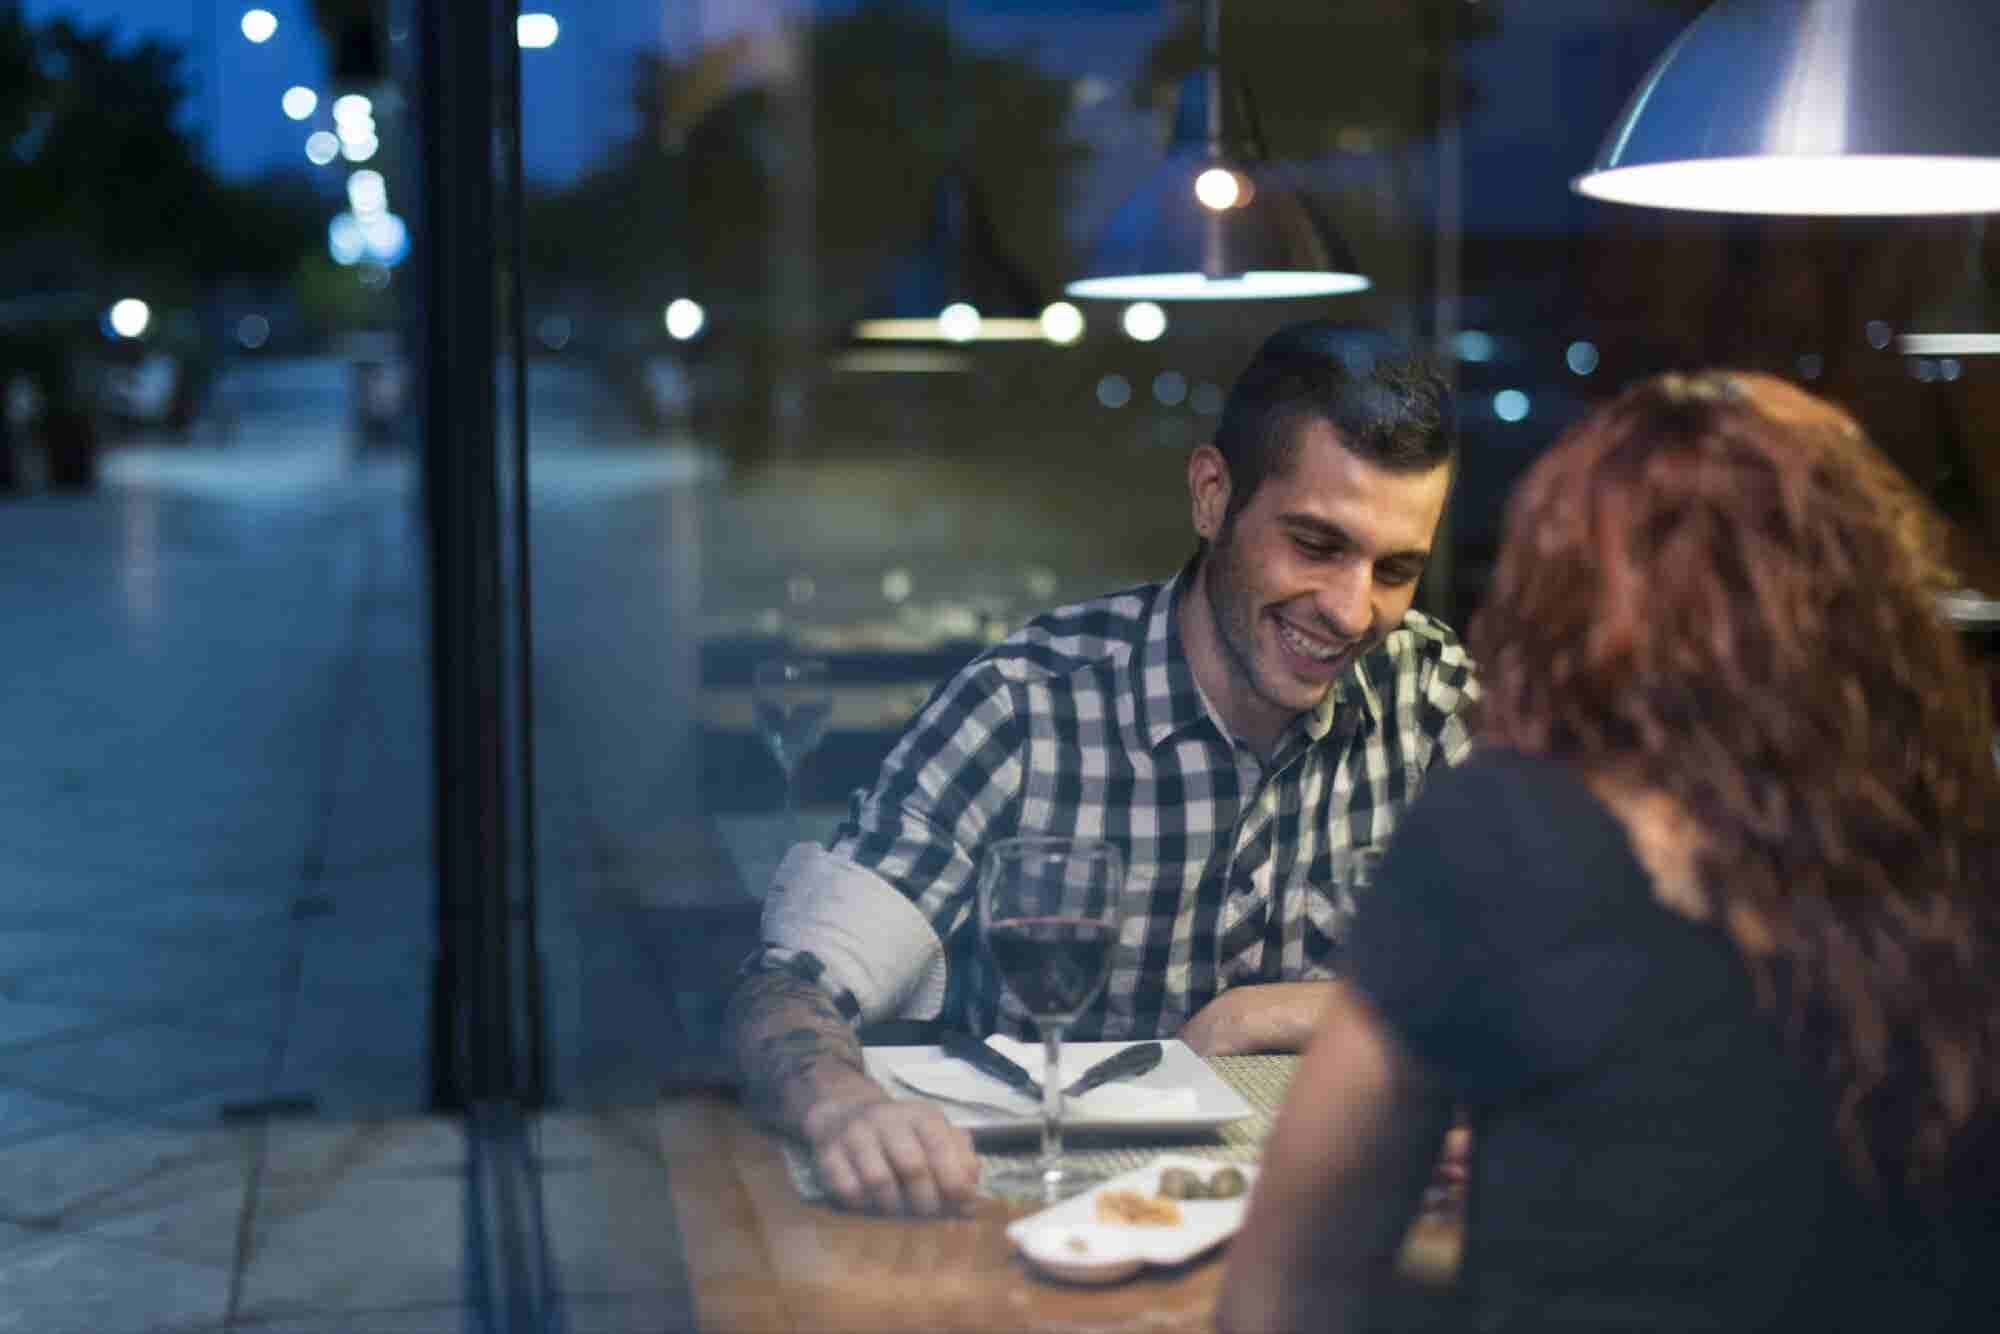 These Are the Attributes Single Entrepreneurs Desire Most in Dates